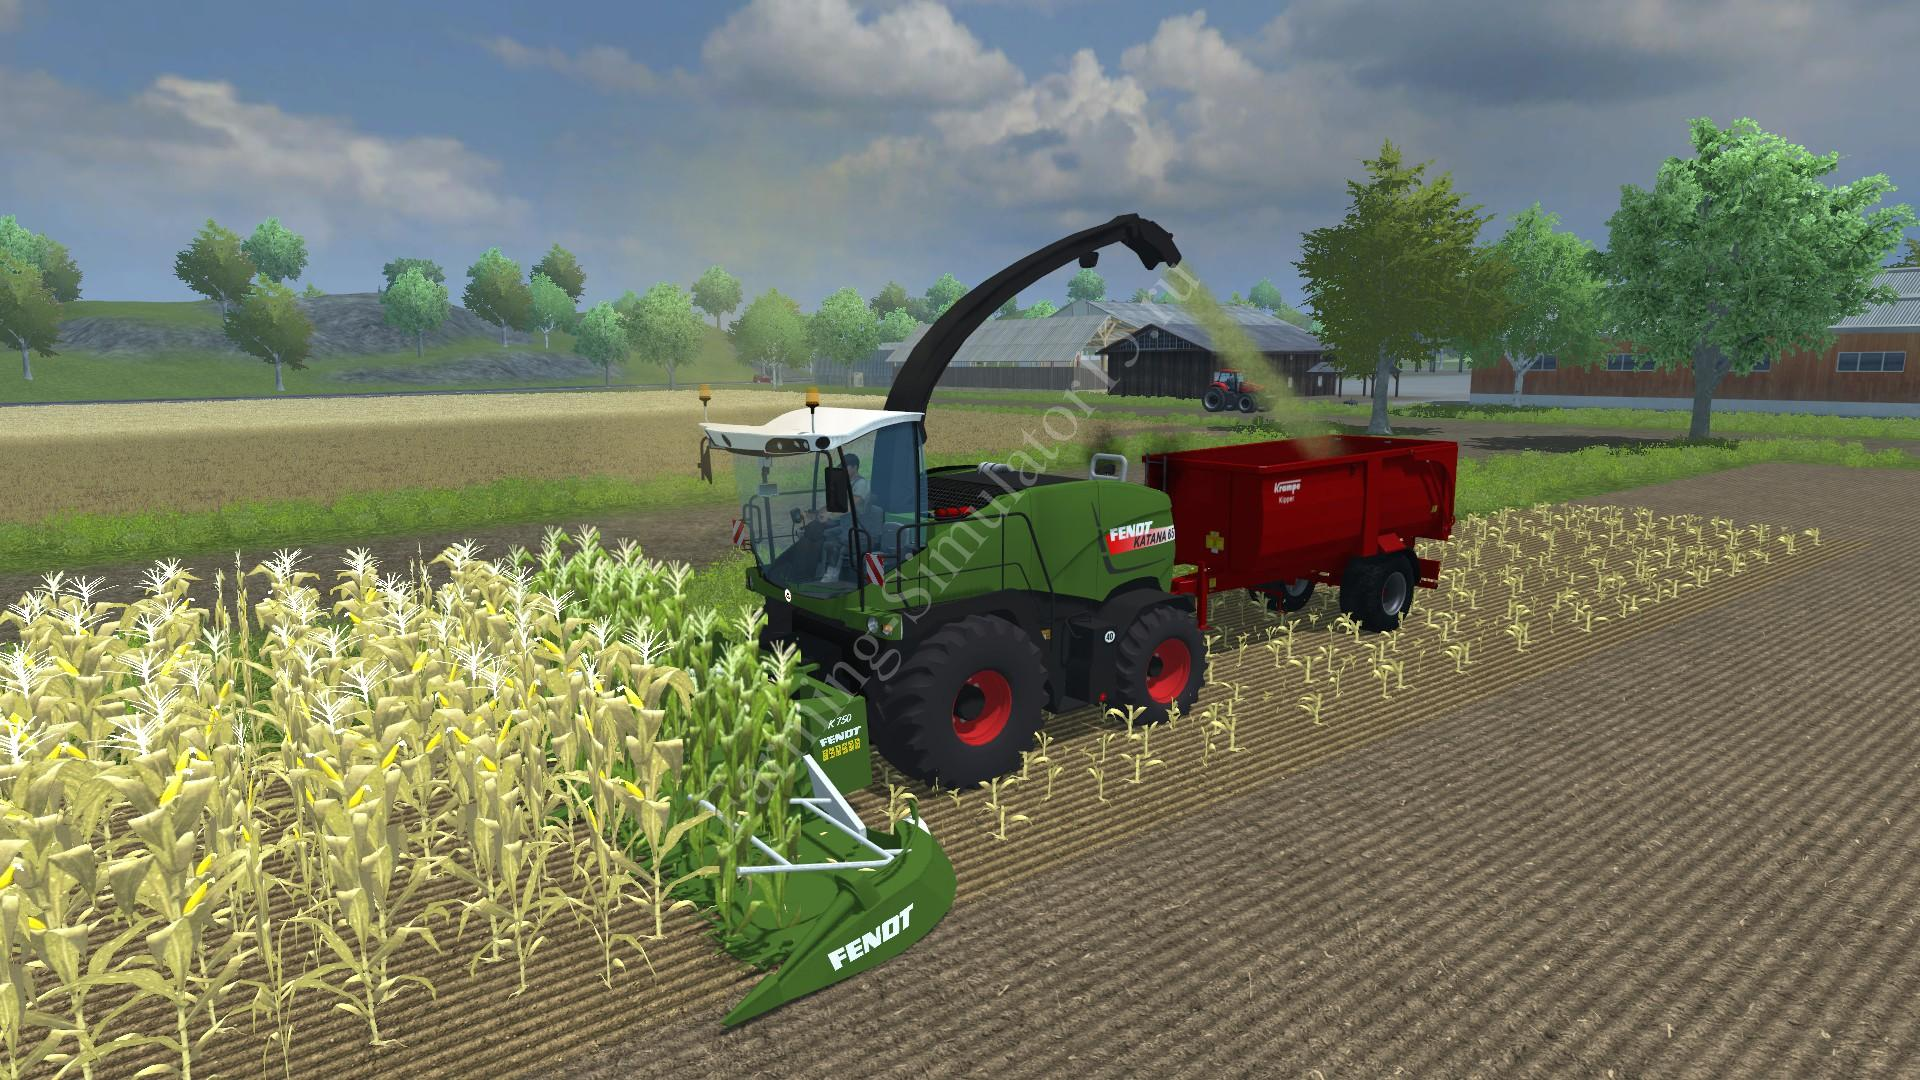 Мод комбайна Fendt Katana 65 v 1.0 Farming Simulator 2013, Farming Simulator 13